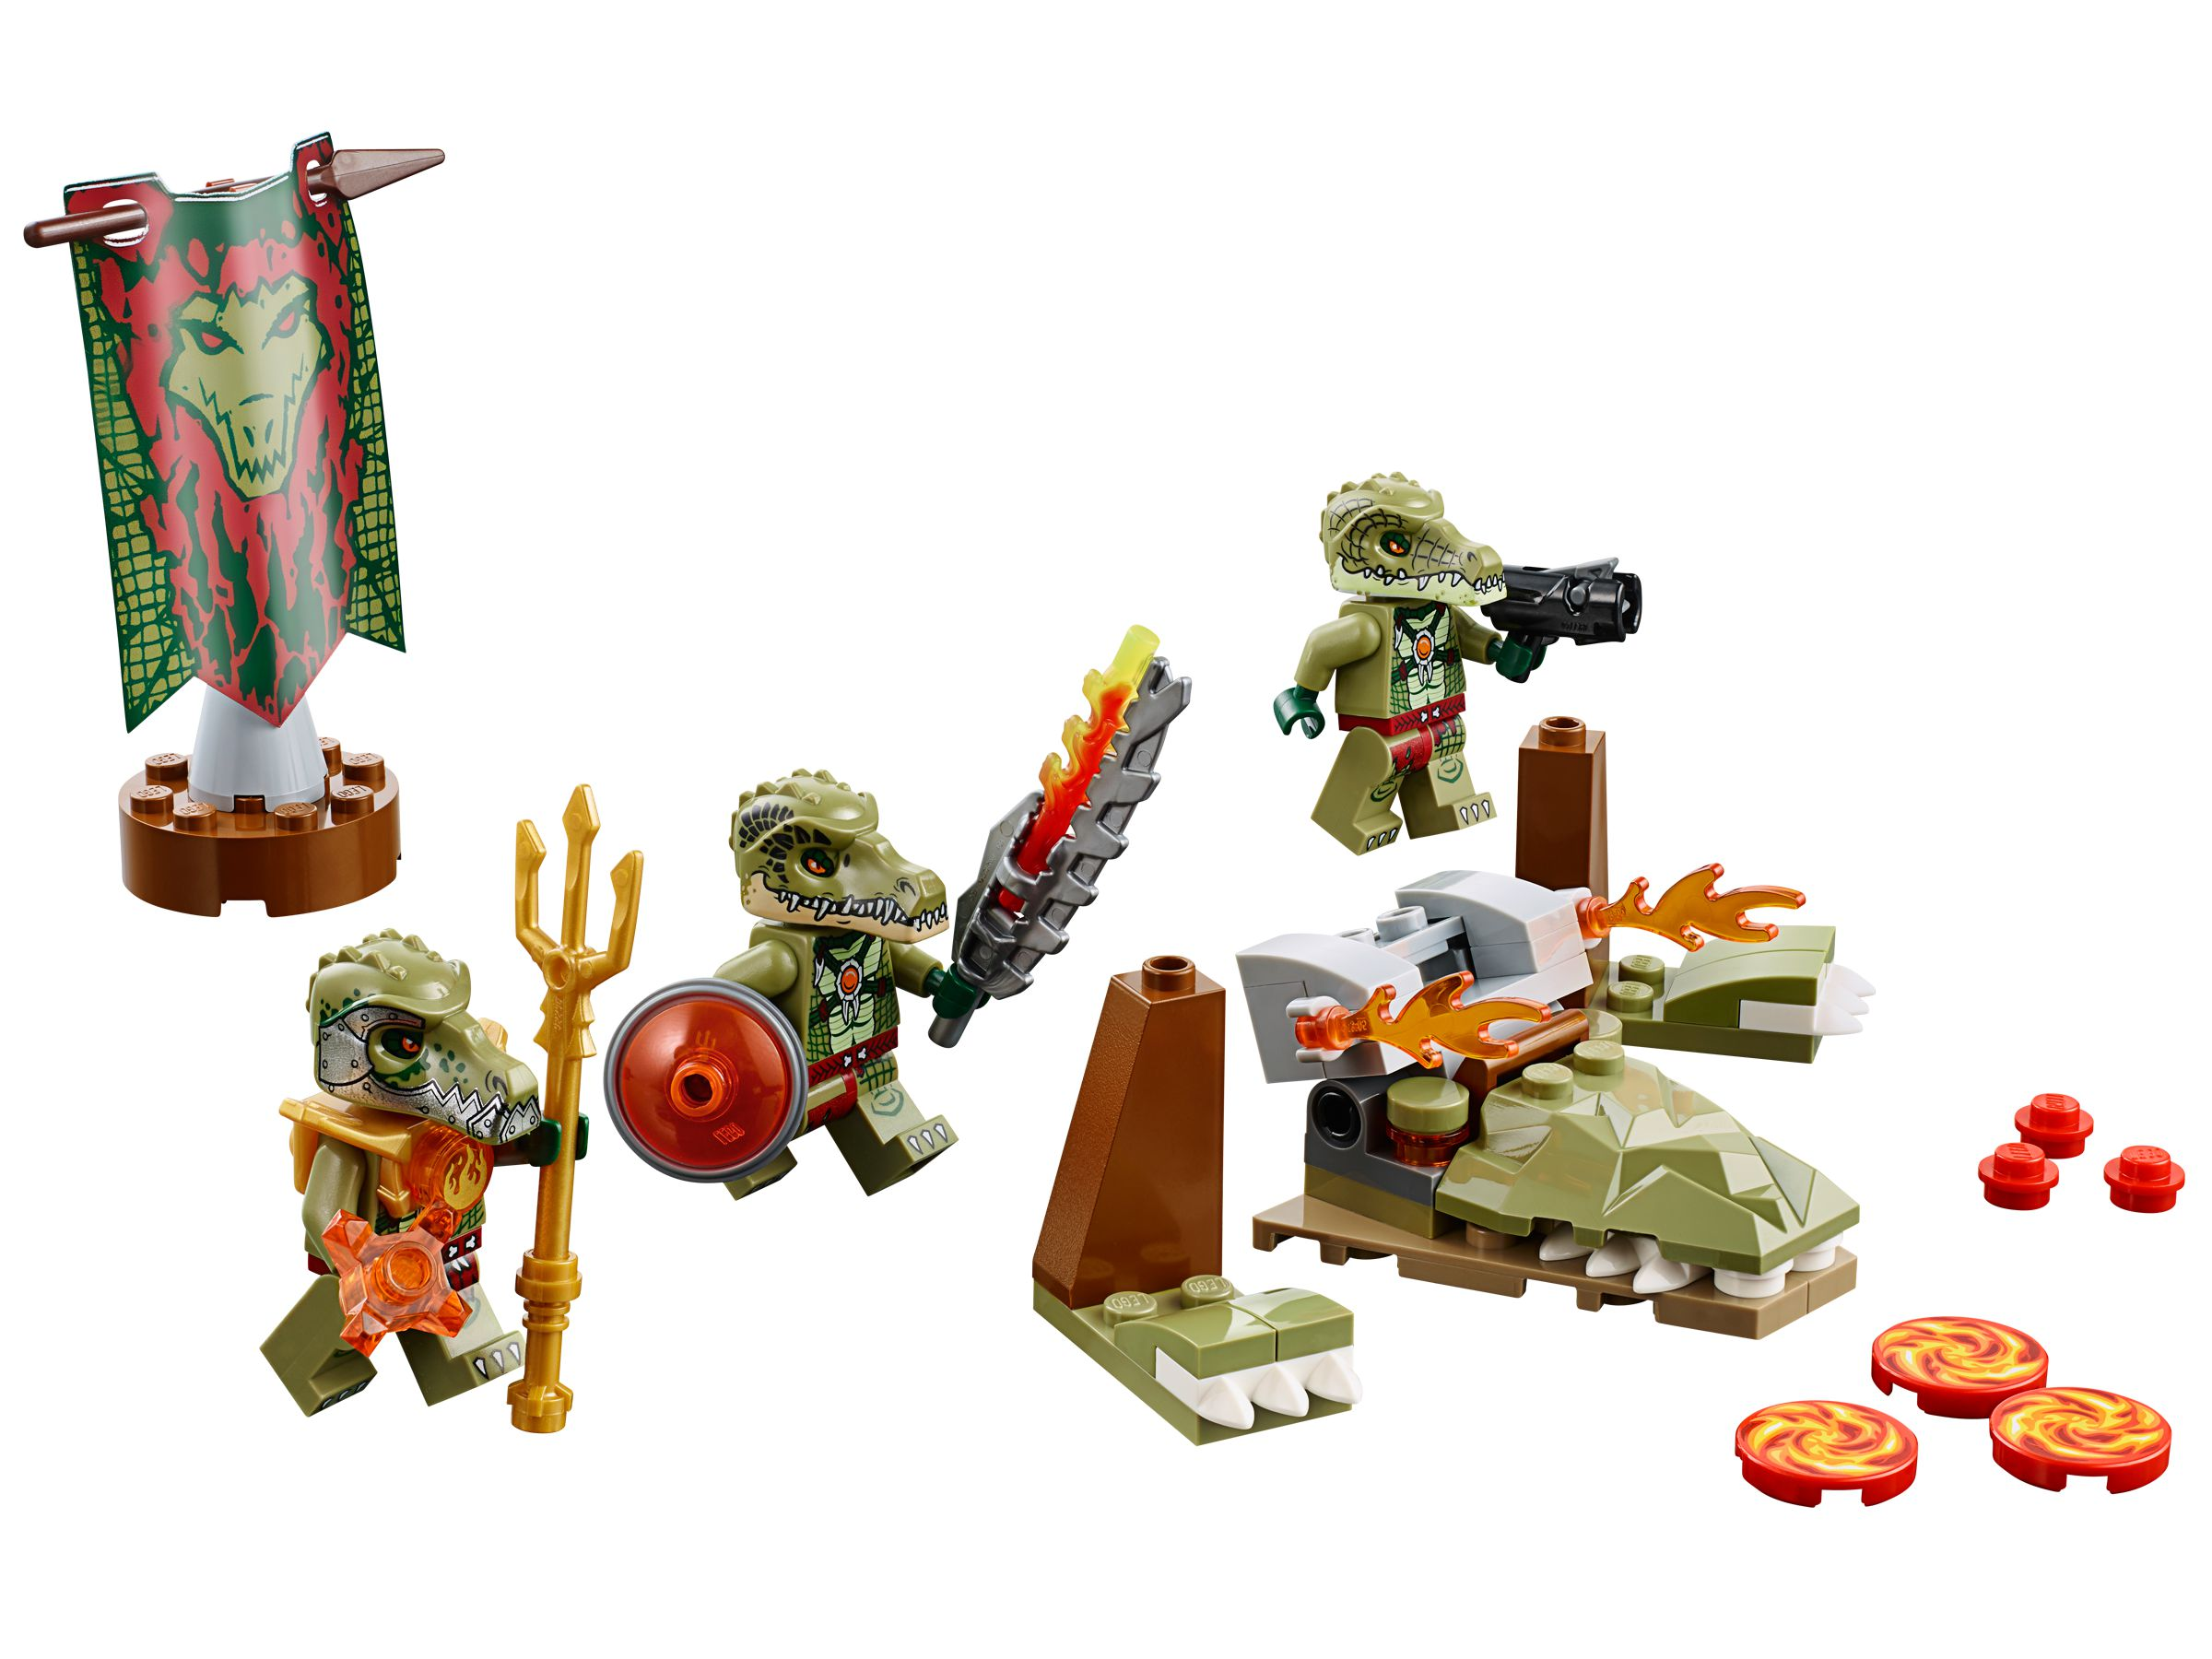 LEGO Legends Of Chima 70231 Krokodilstamm-Set LEGO_70231.jpg